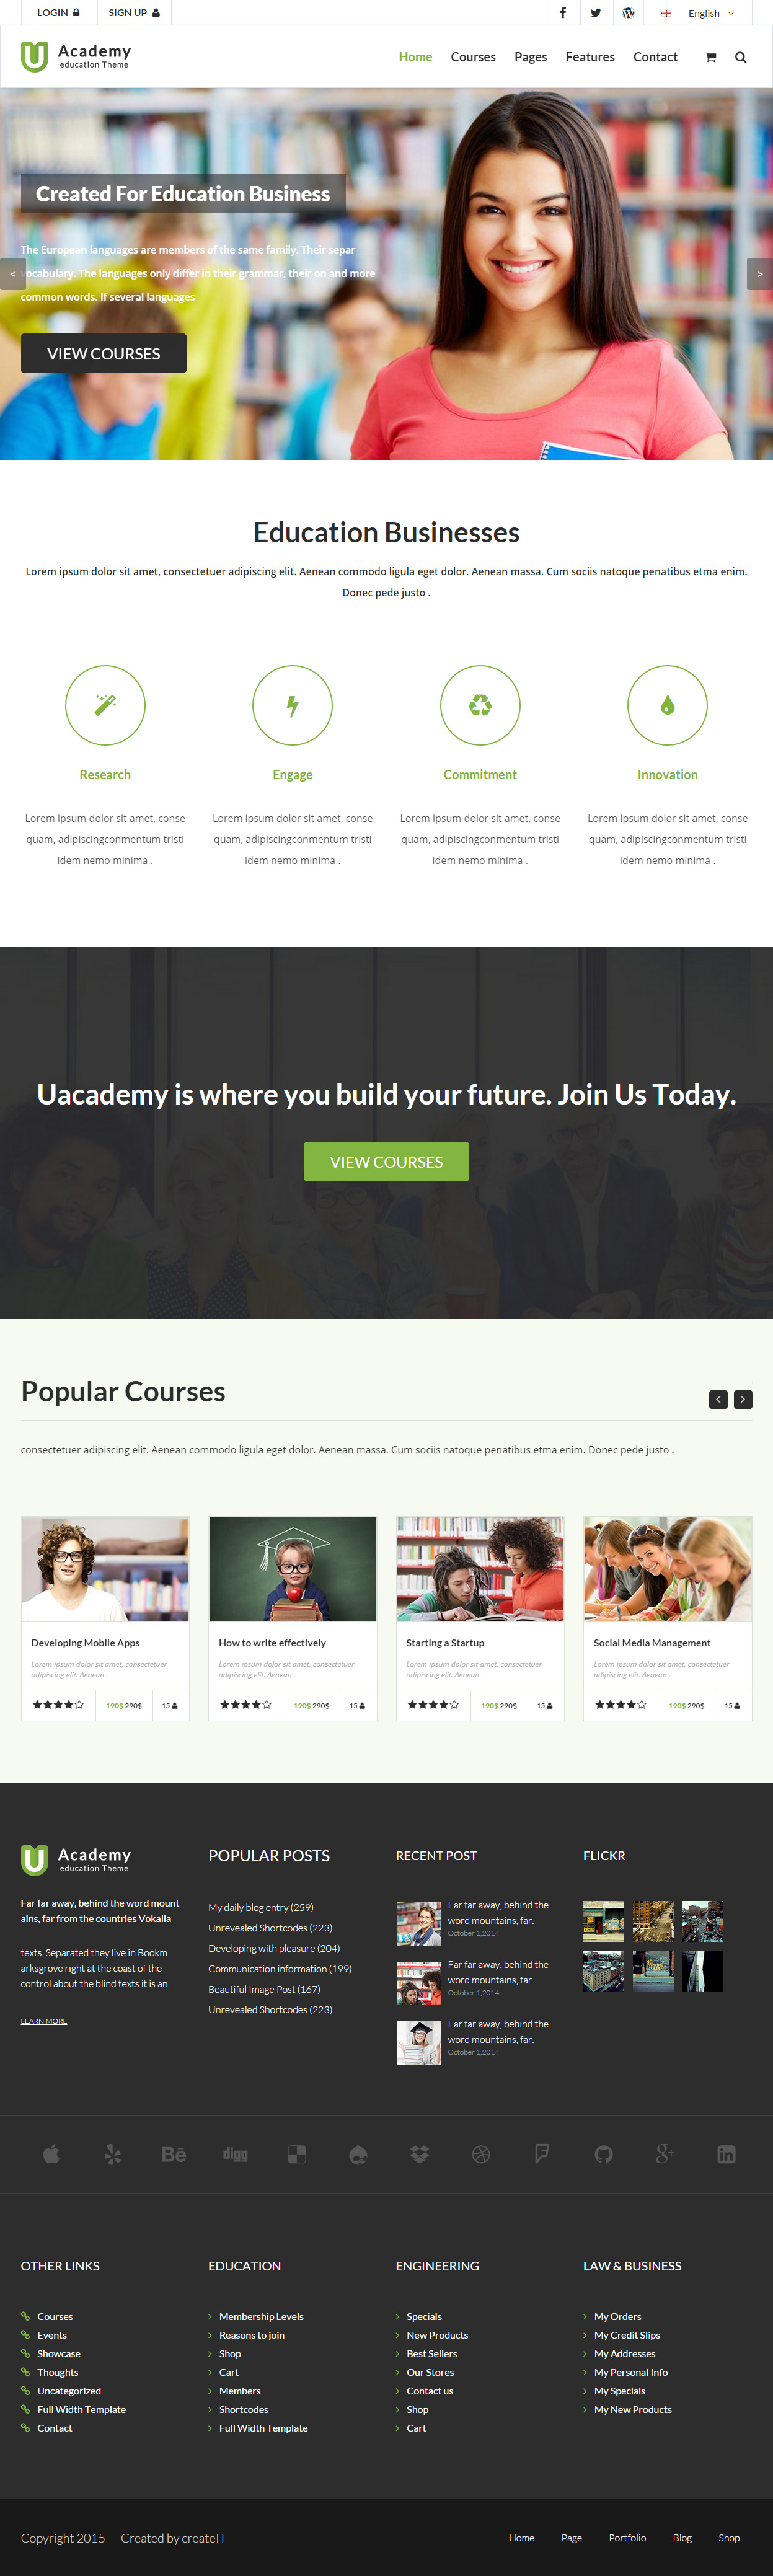 Best Responsive HTML5 Learning Management System Templates in 2015 ...